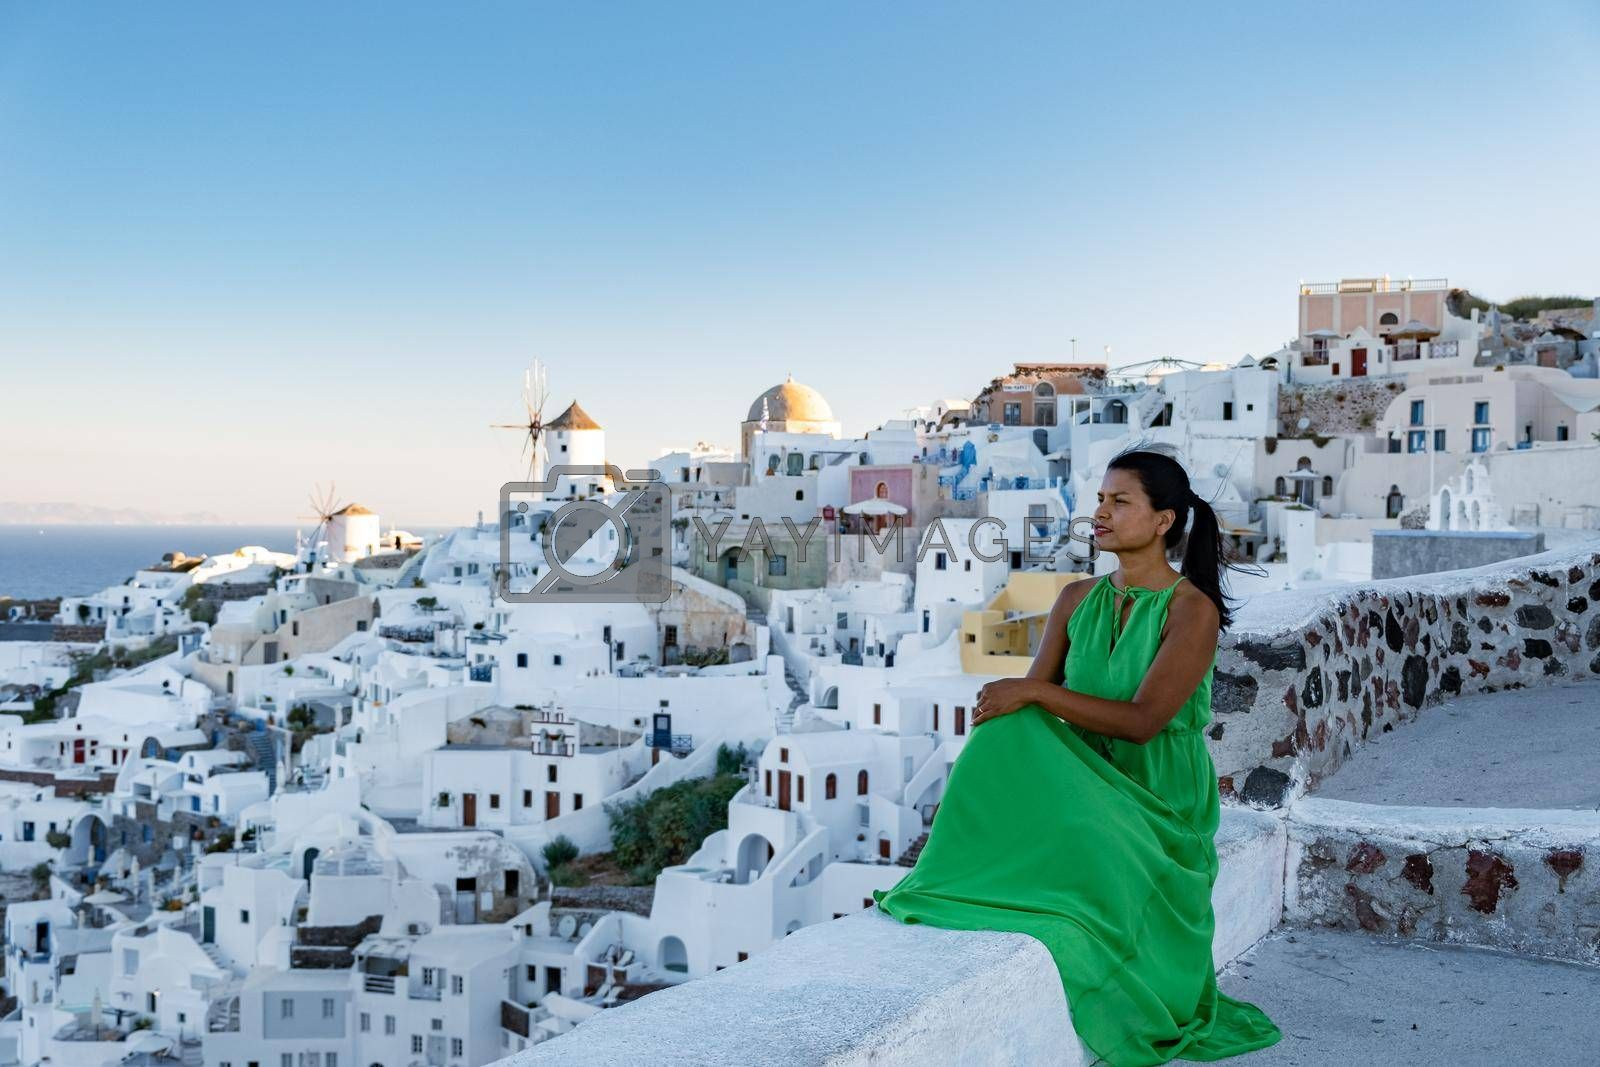 Oia village Santorini with blue domes and white washed house during sunset at the Island of Santorini Greece Europe, sunrise Santorini, woman watching sunset